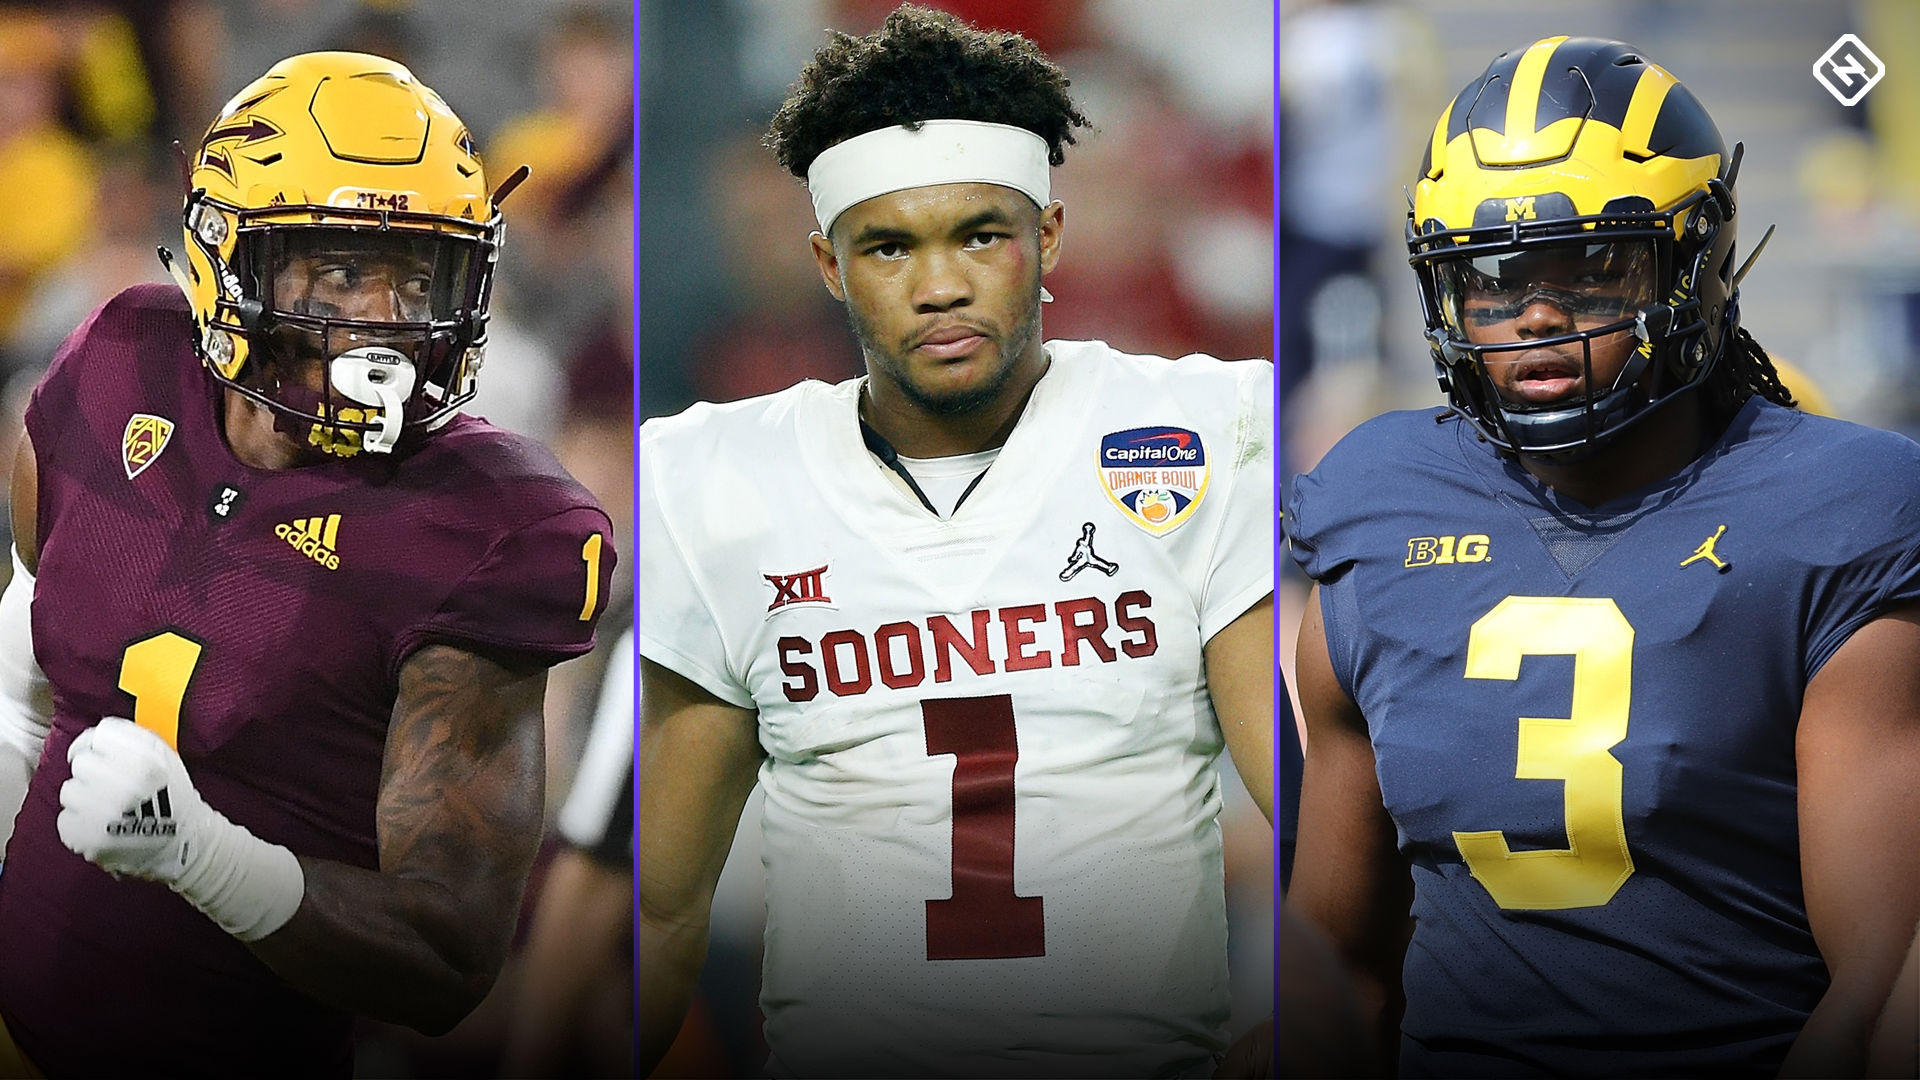 Best Nfl Players 2019 2019 NFL Draft prospects: Big board of top 100 players | Sporting News